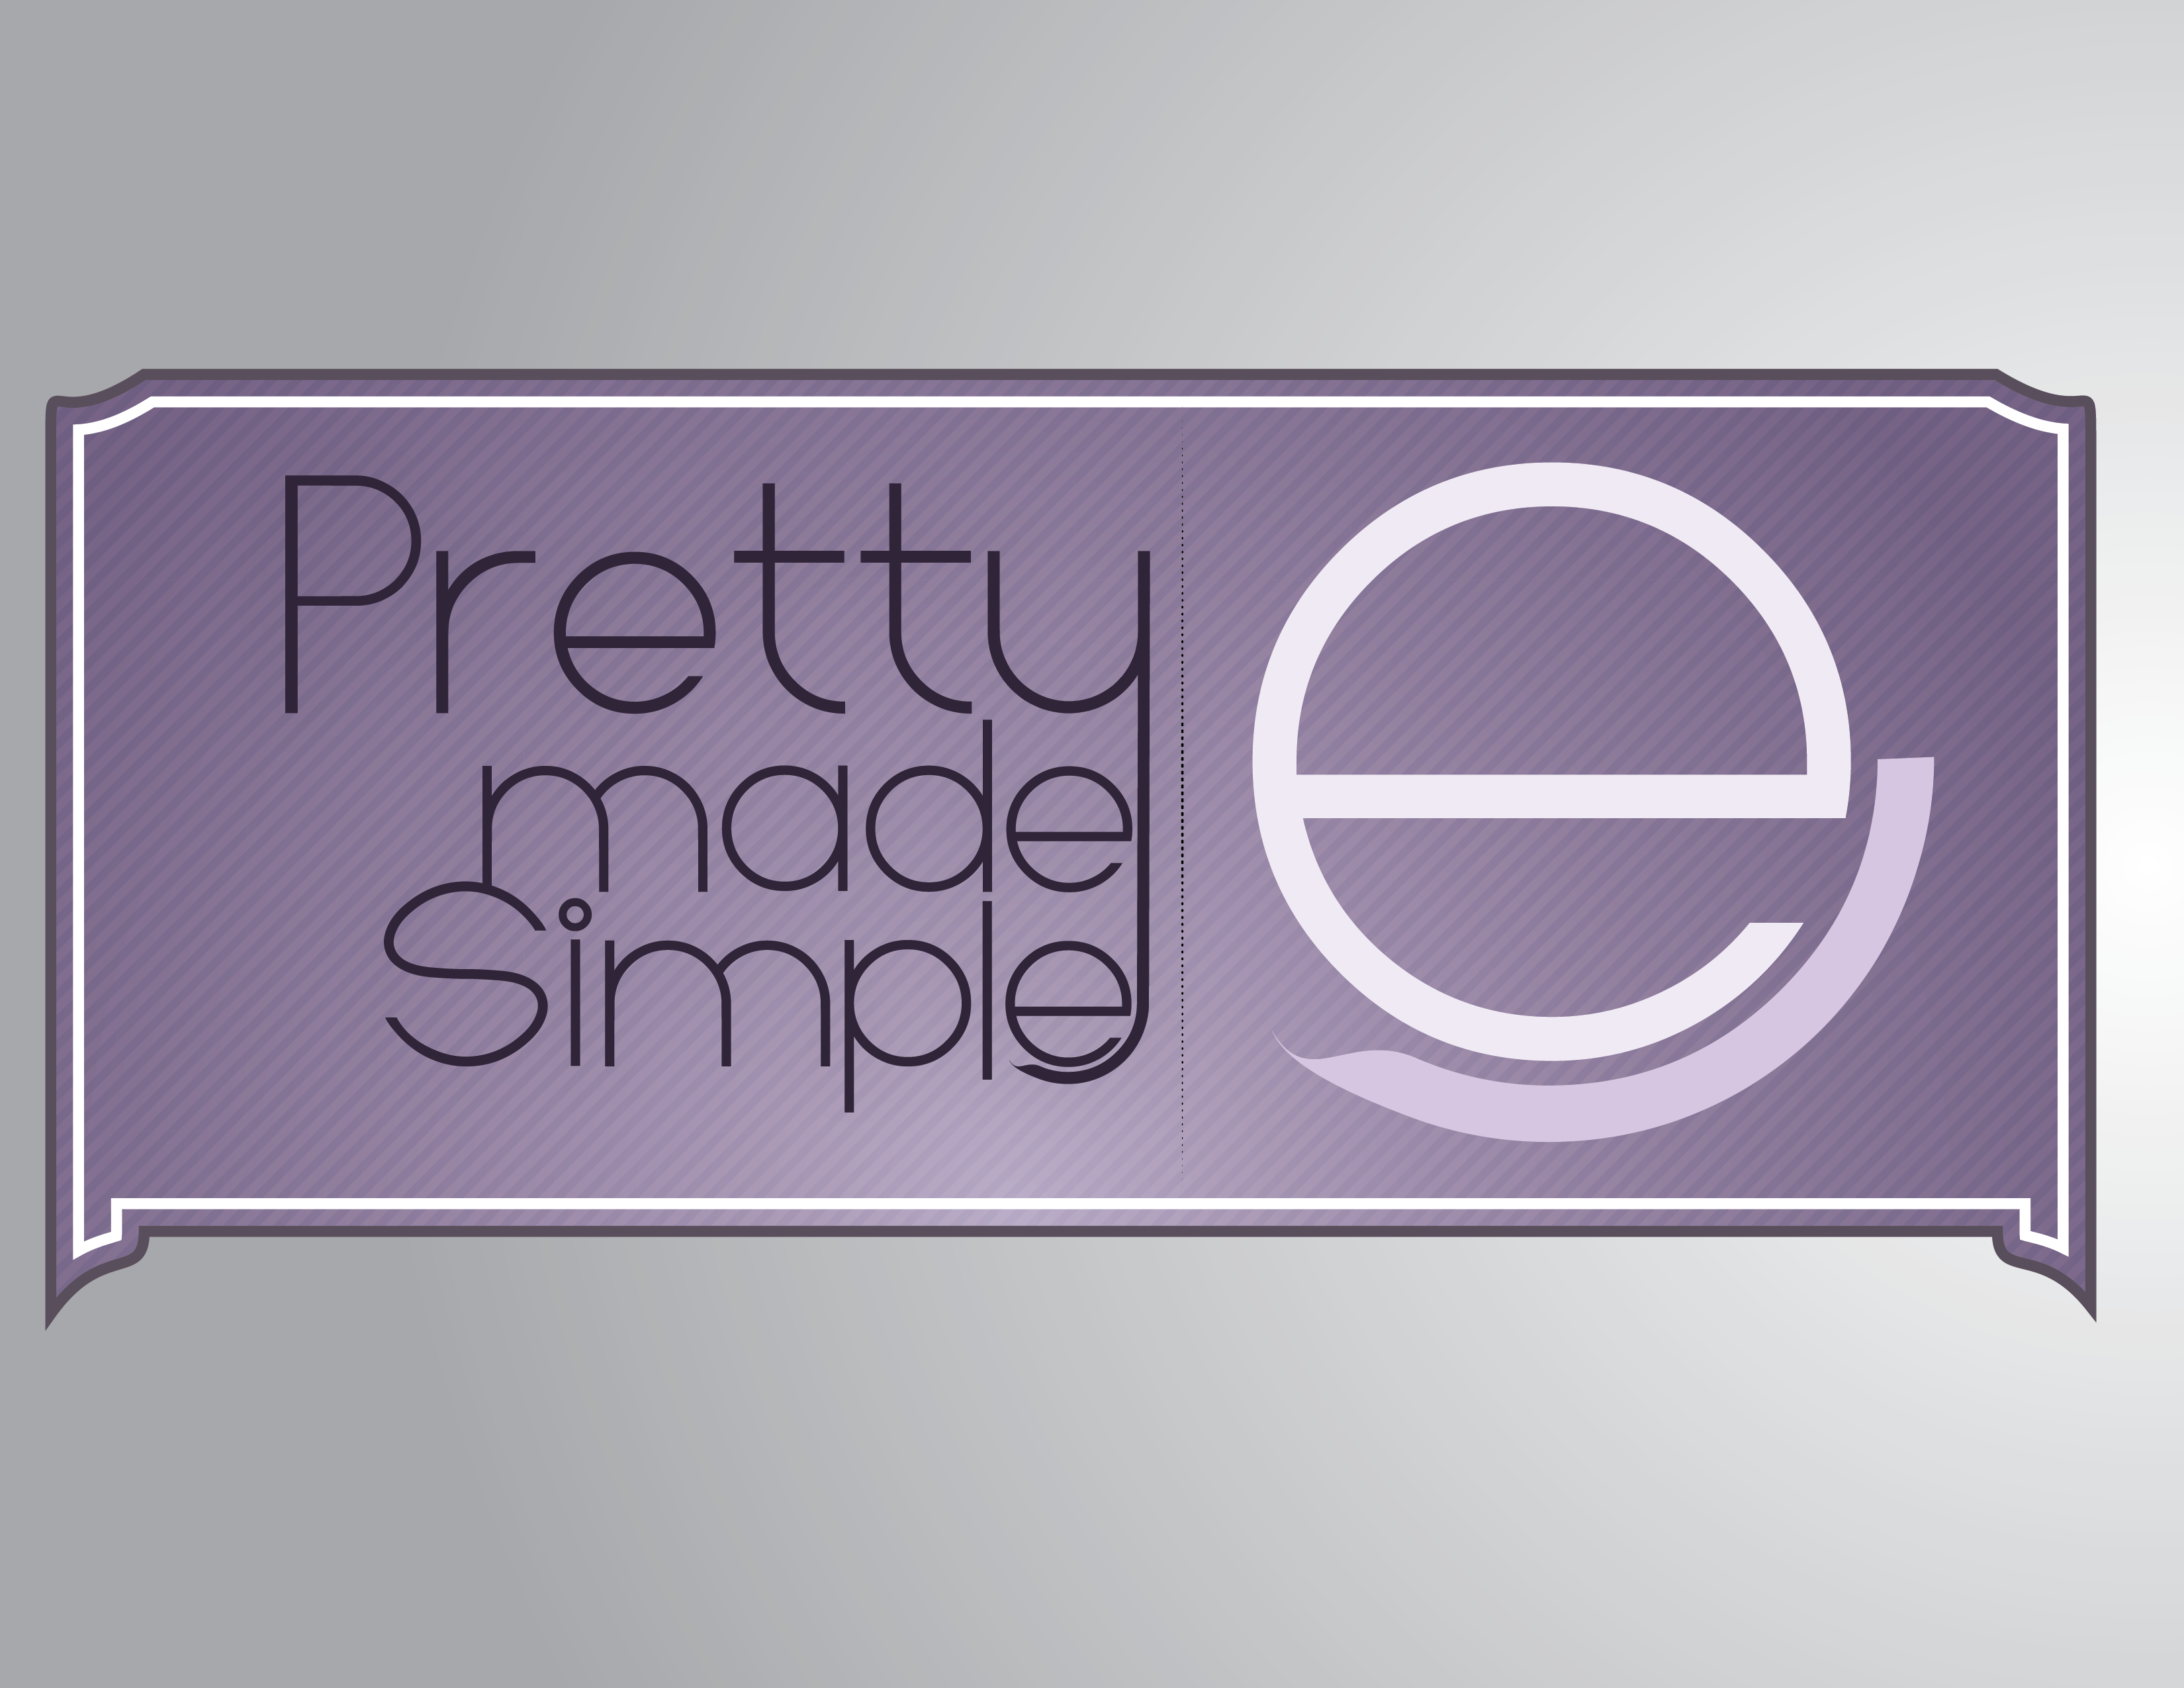 Logo Design by John Pelelis - Entry No. 28 in the Logo Design Contest Pretty Made Simple Logo Design.